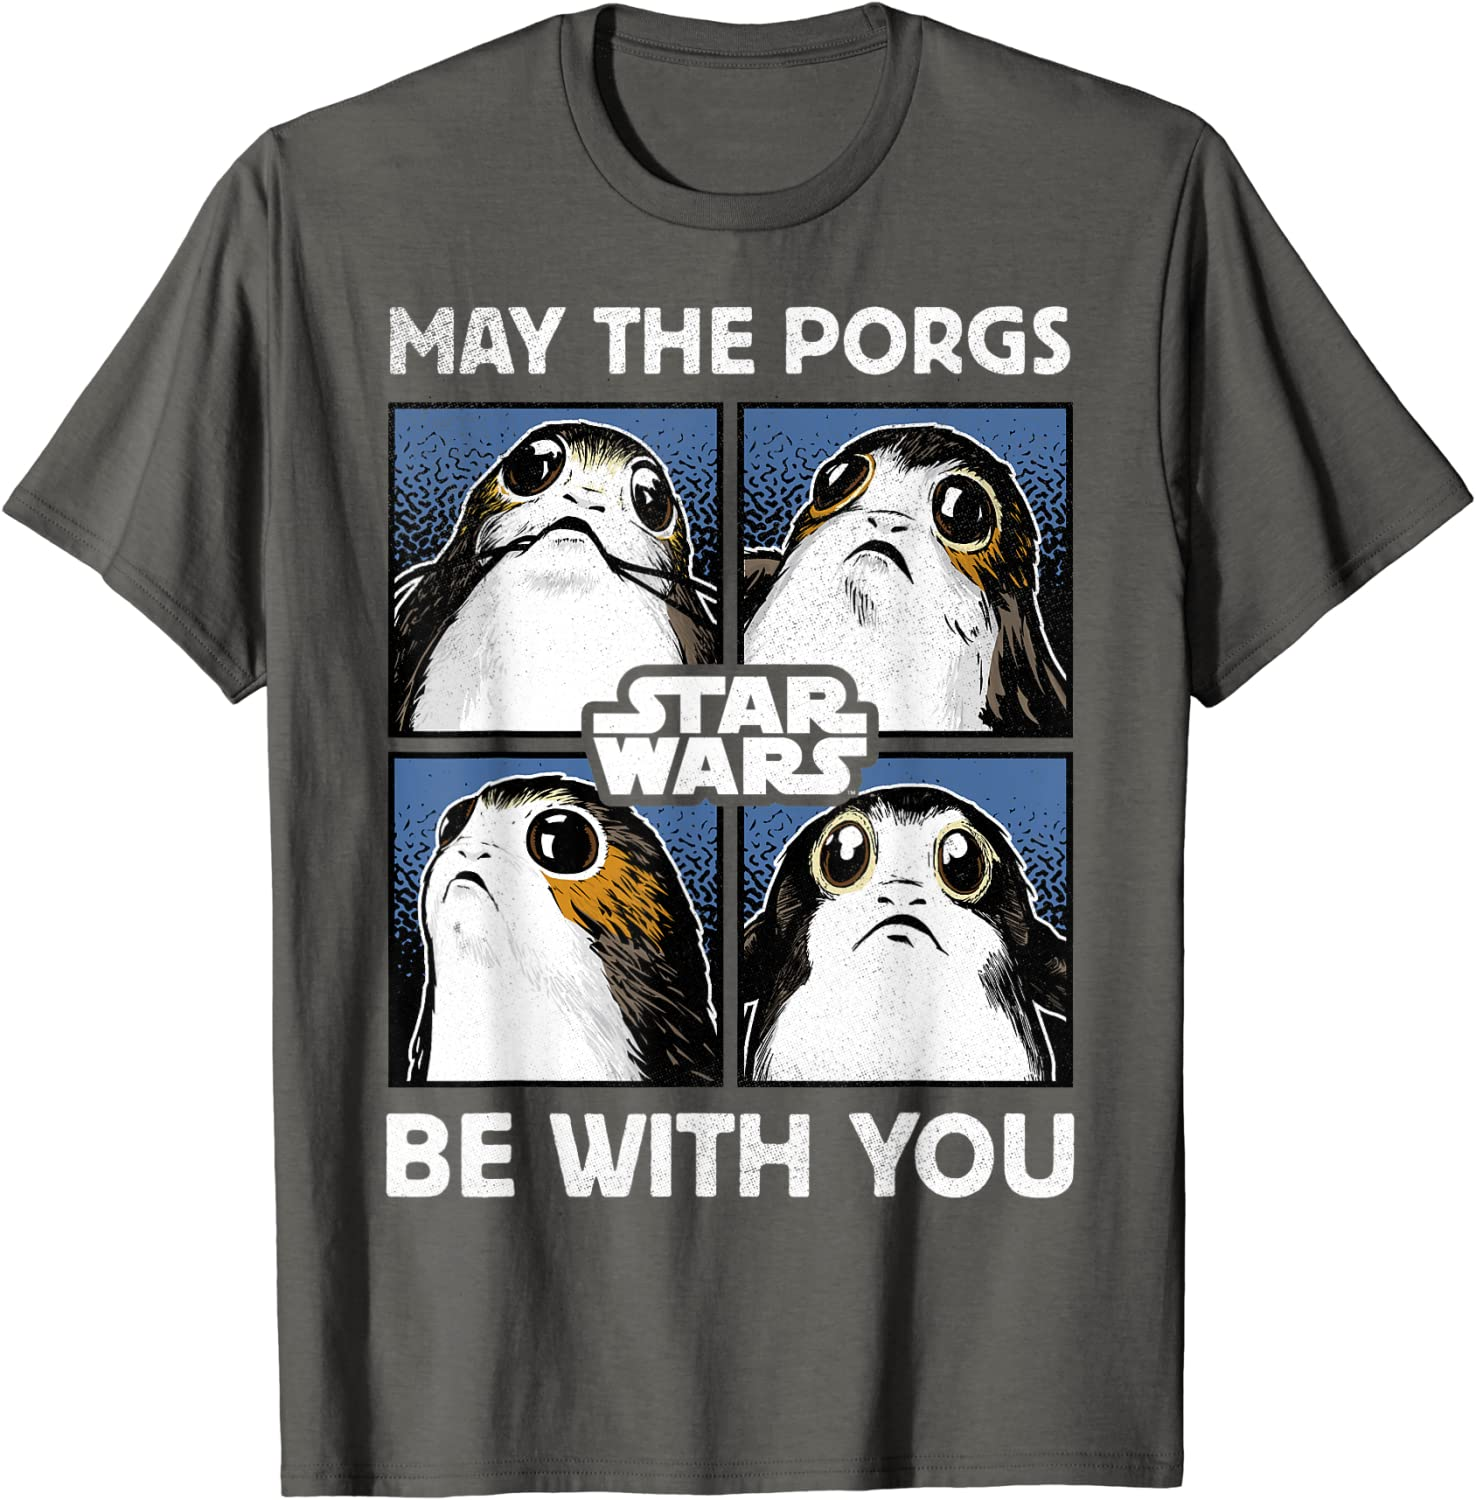 Star Wars May The Porgs Be With You T-Shirt